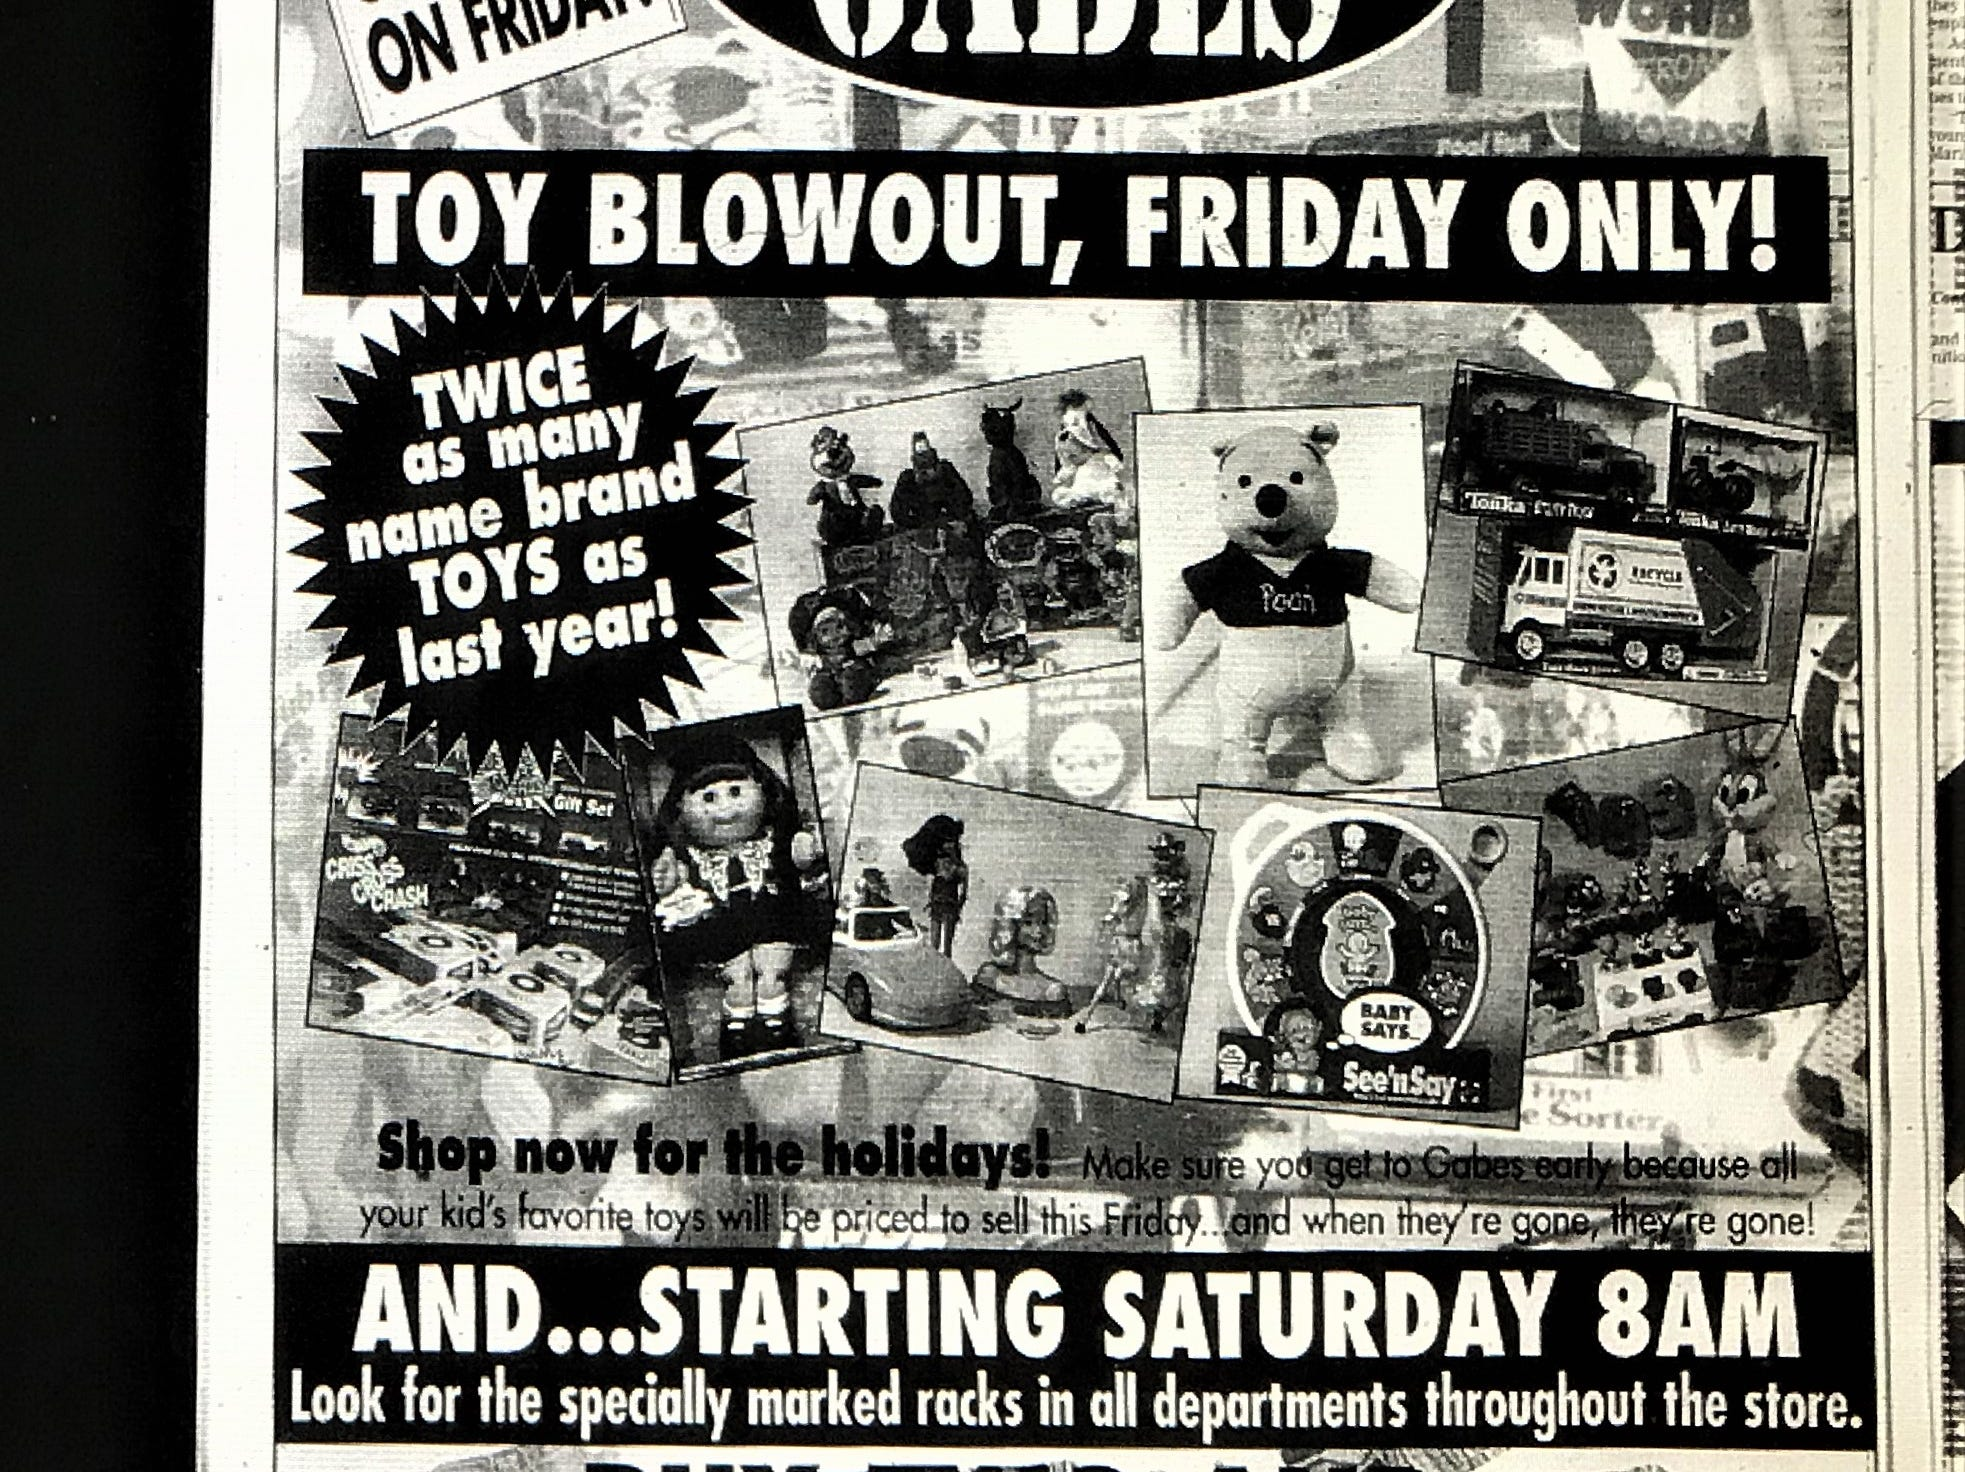 A full page ad from Gabe's department store in the Wednesday, November 26, 1998 issue of the York Daily Record.